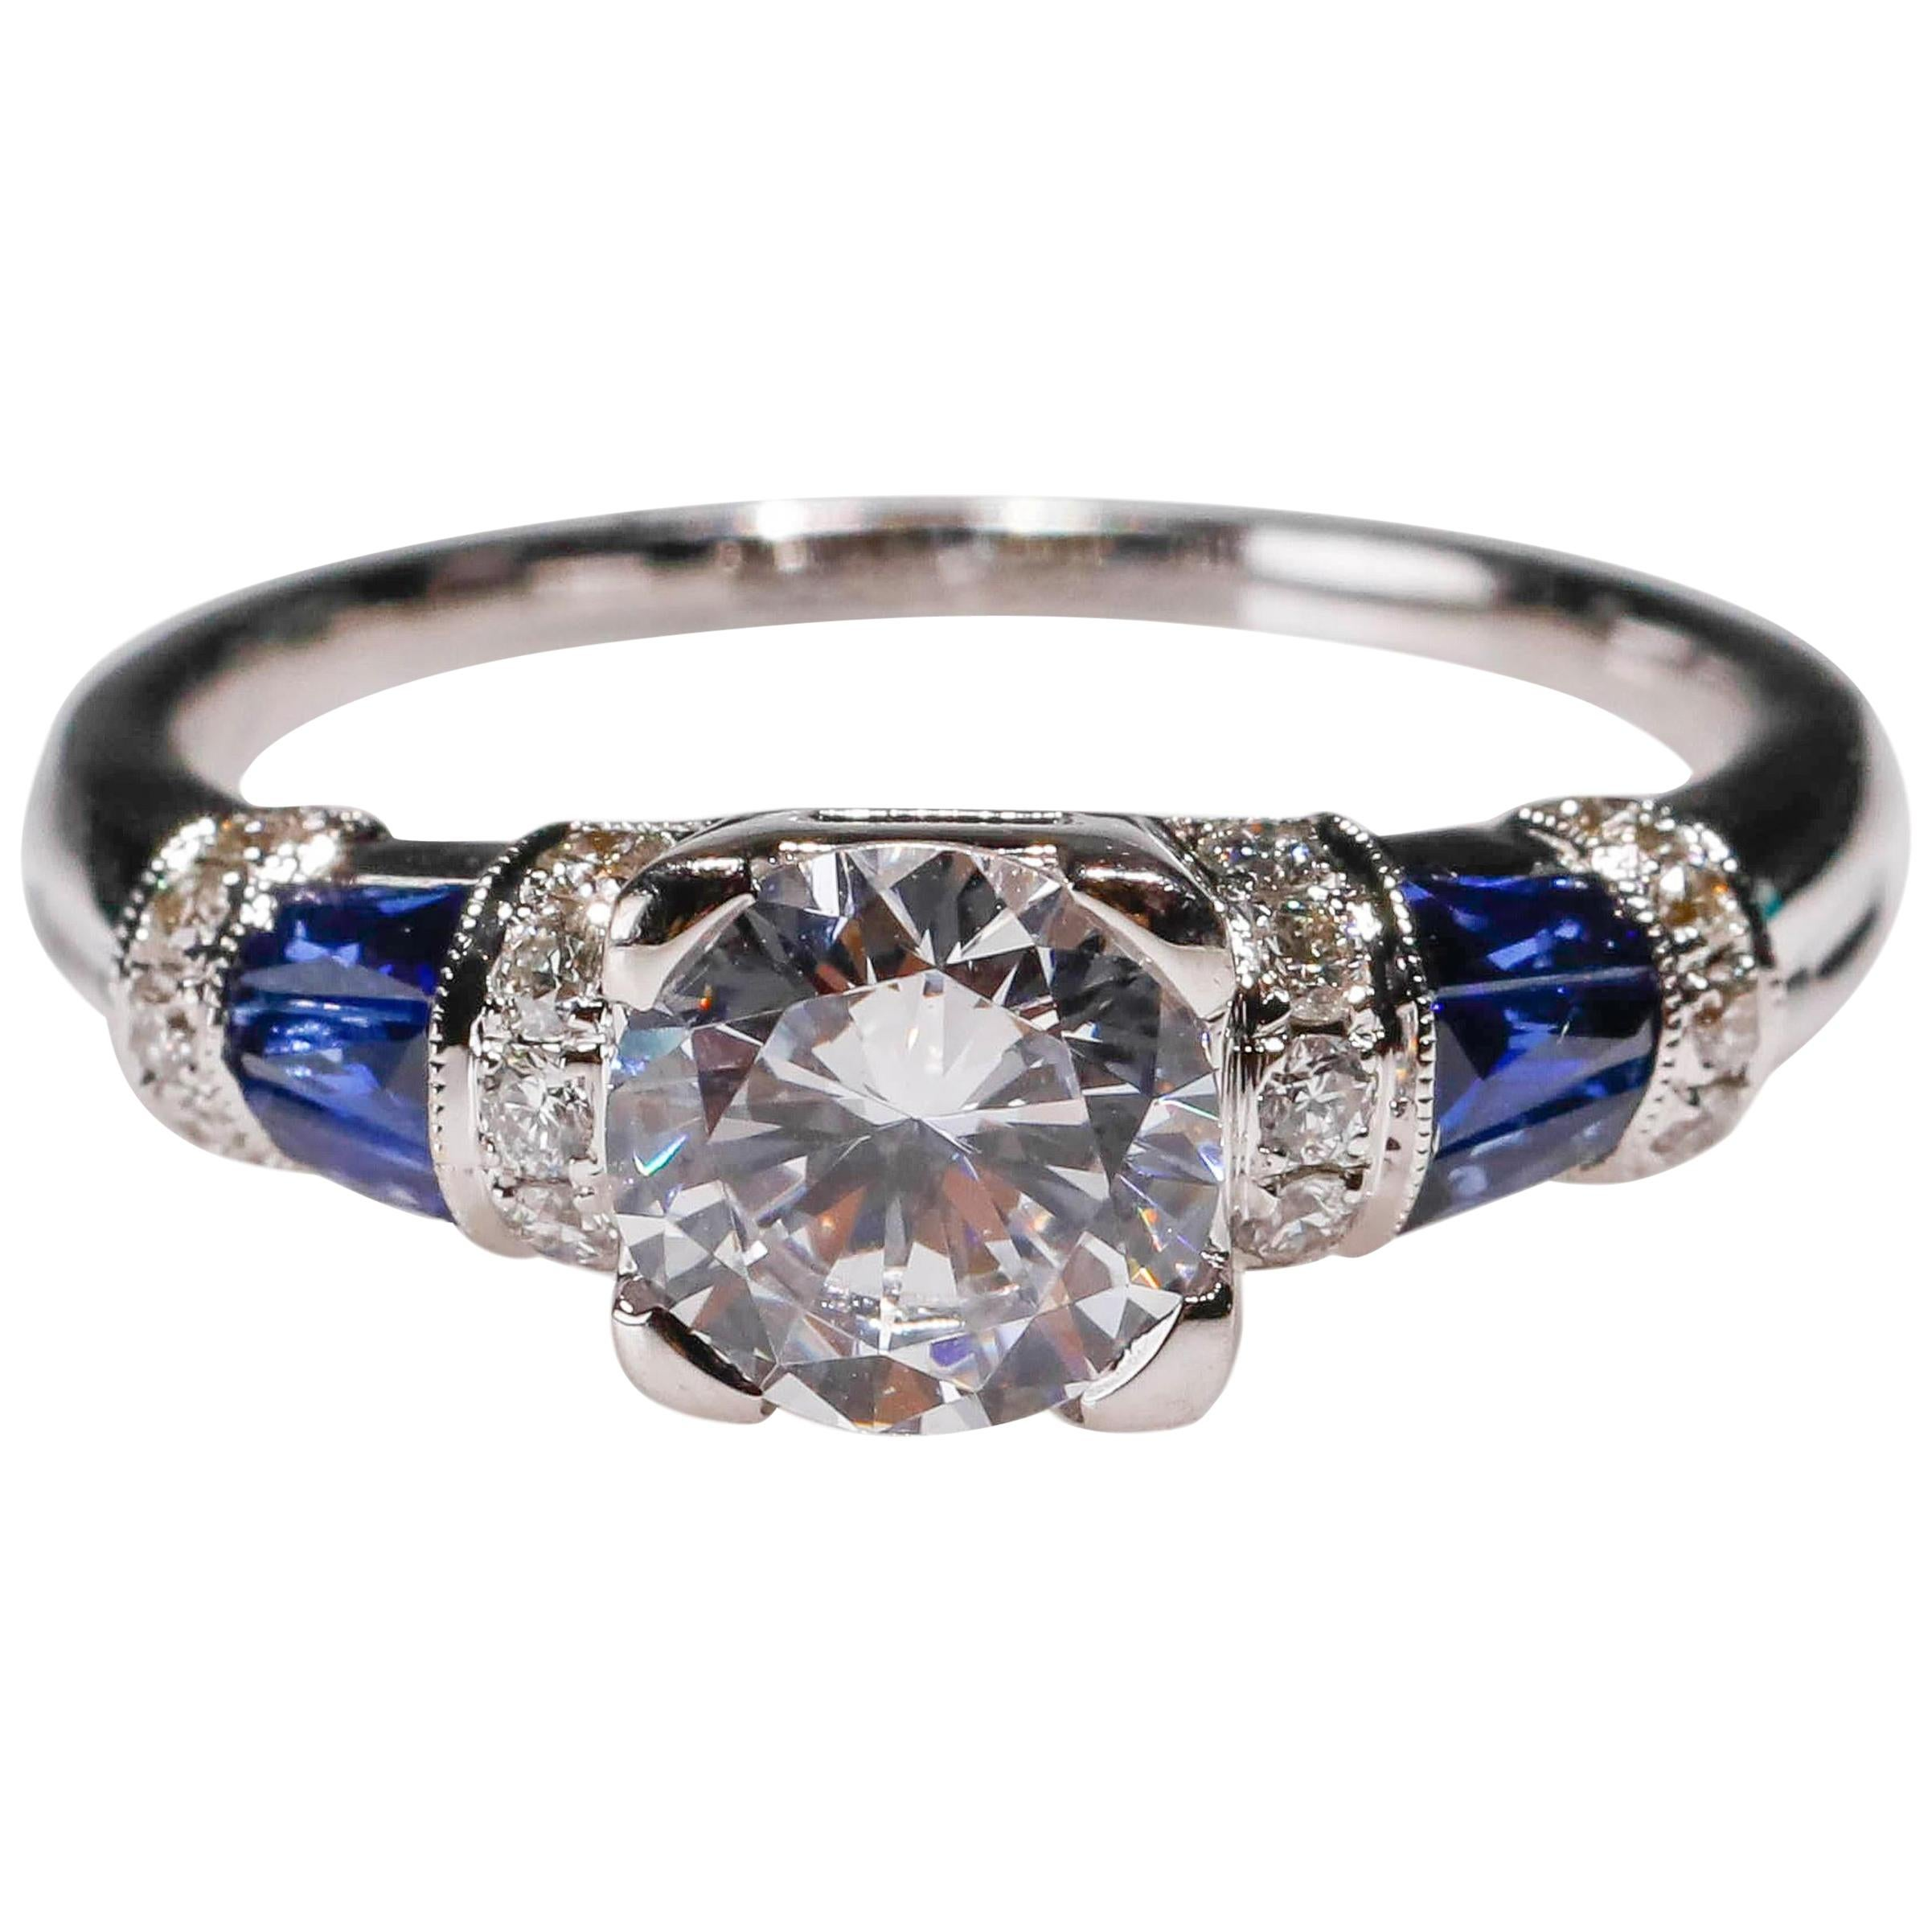 Blue Sapphire 0.2 Carat Round Cut Cubic Zirconia 18K White Gold Solitaire Ring